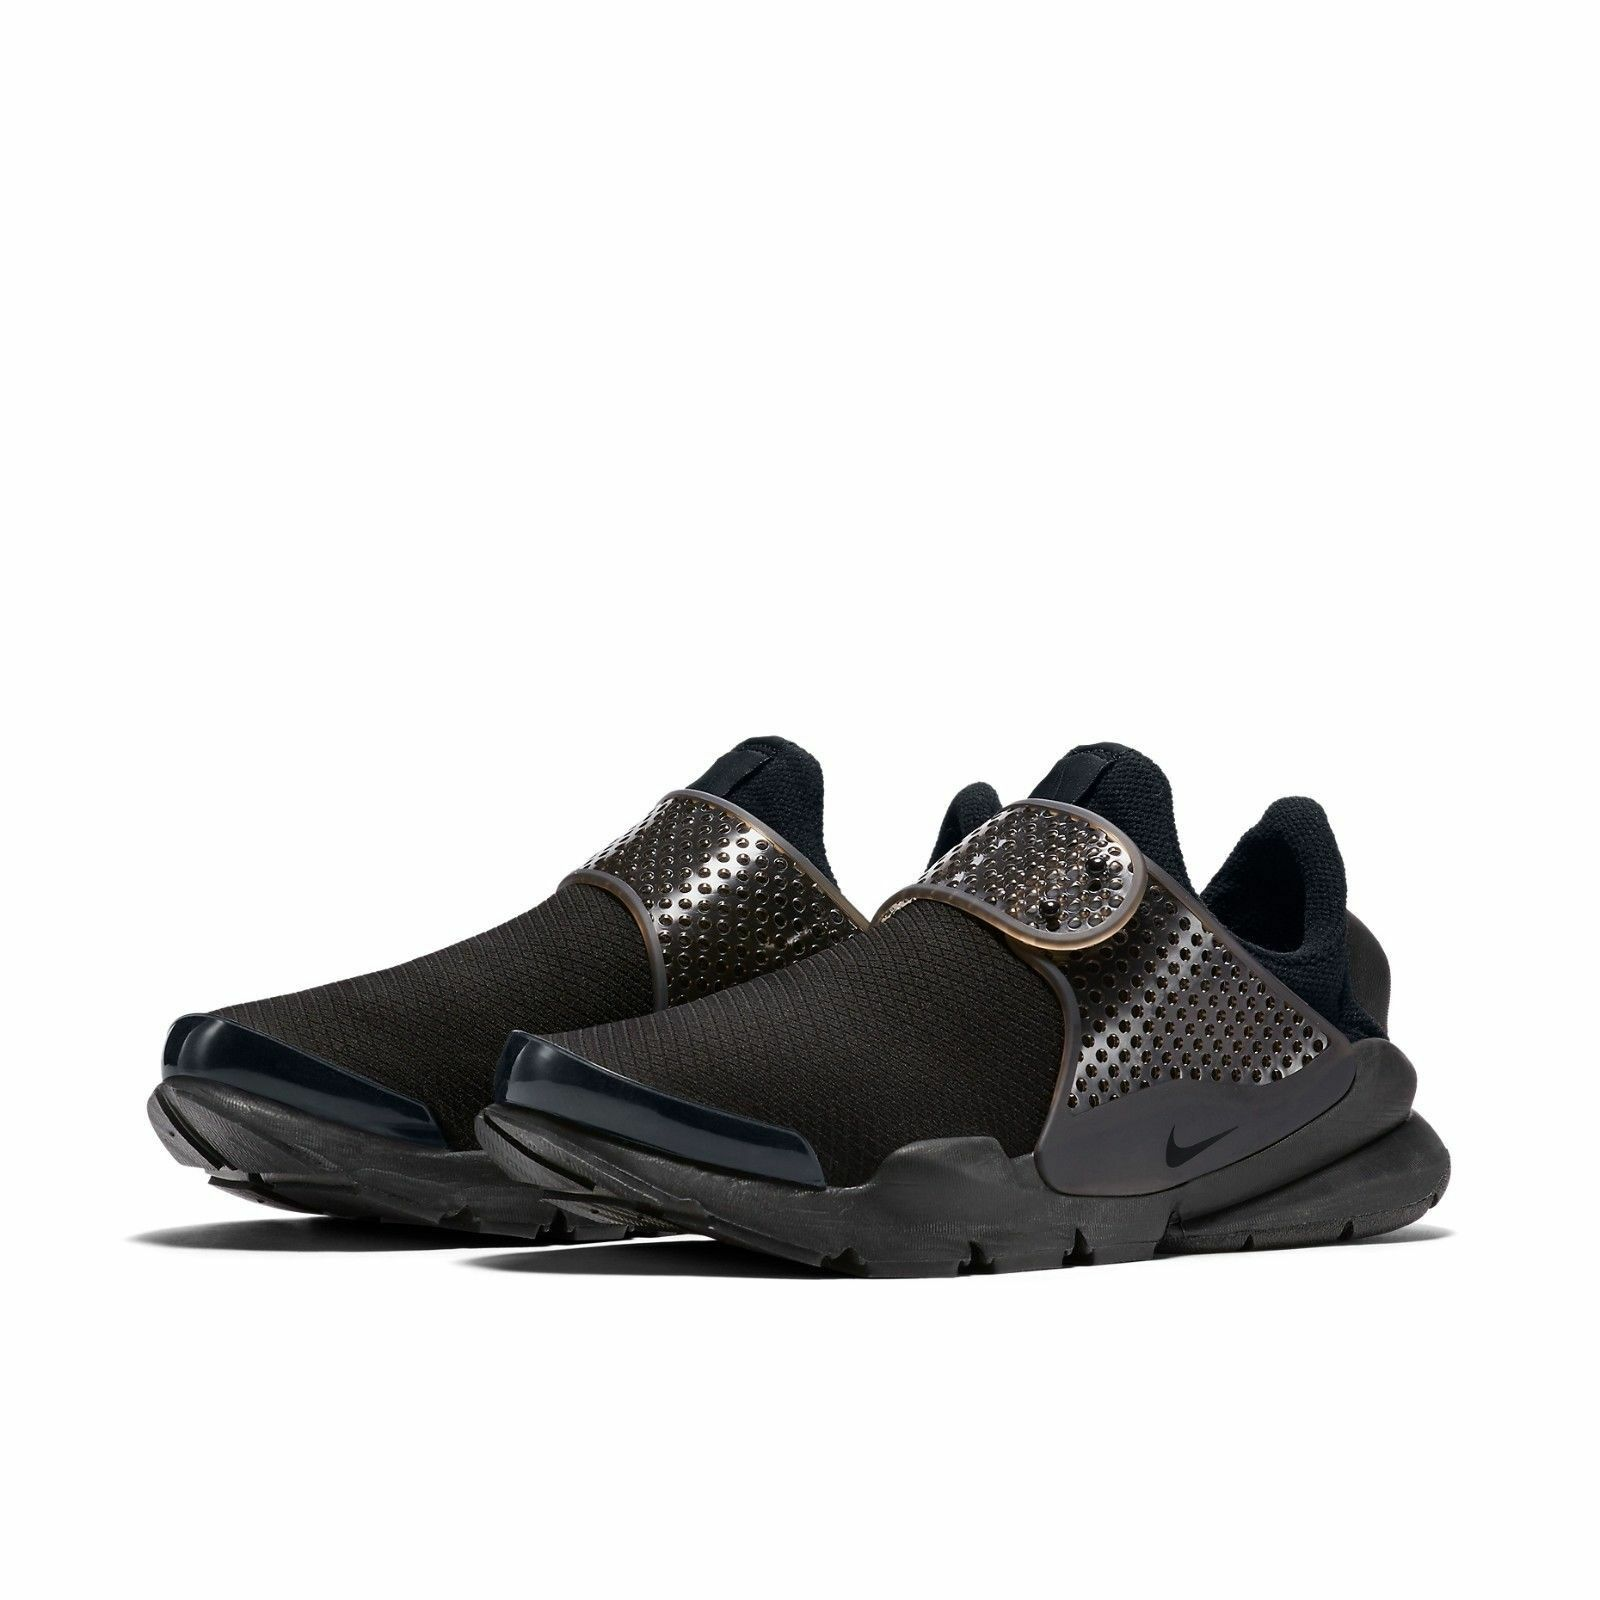 Nike WOMEN'S Sock Dart Black/Volt SIZE 6 BRAND NEW All Day Comfort